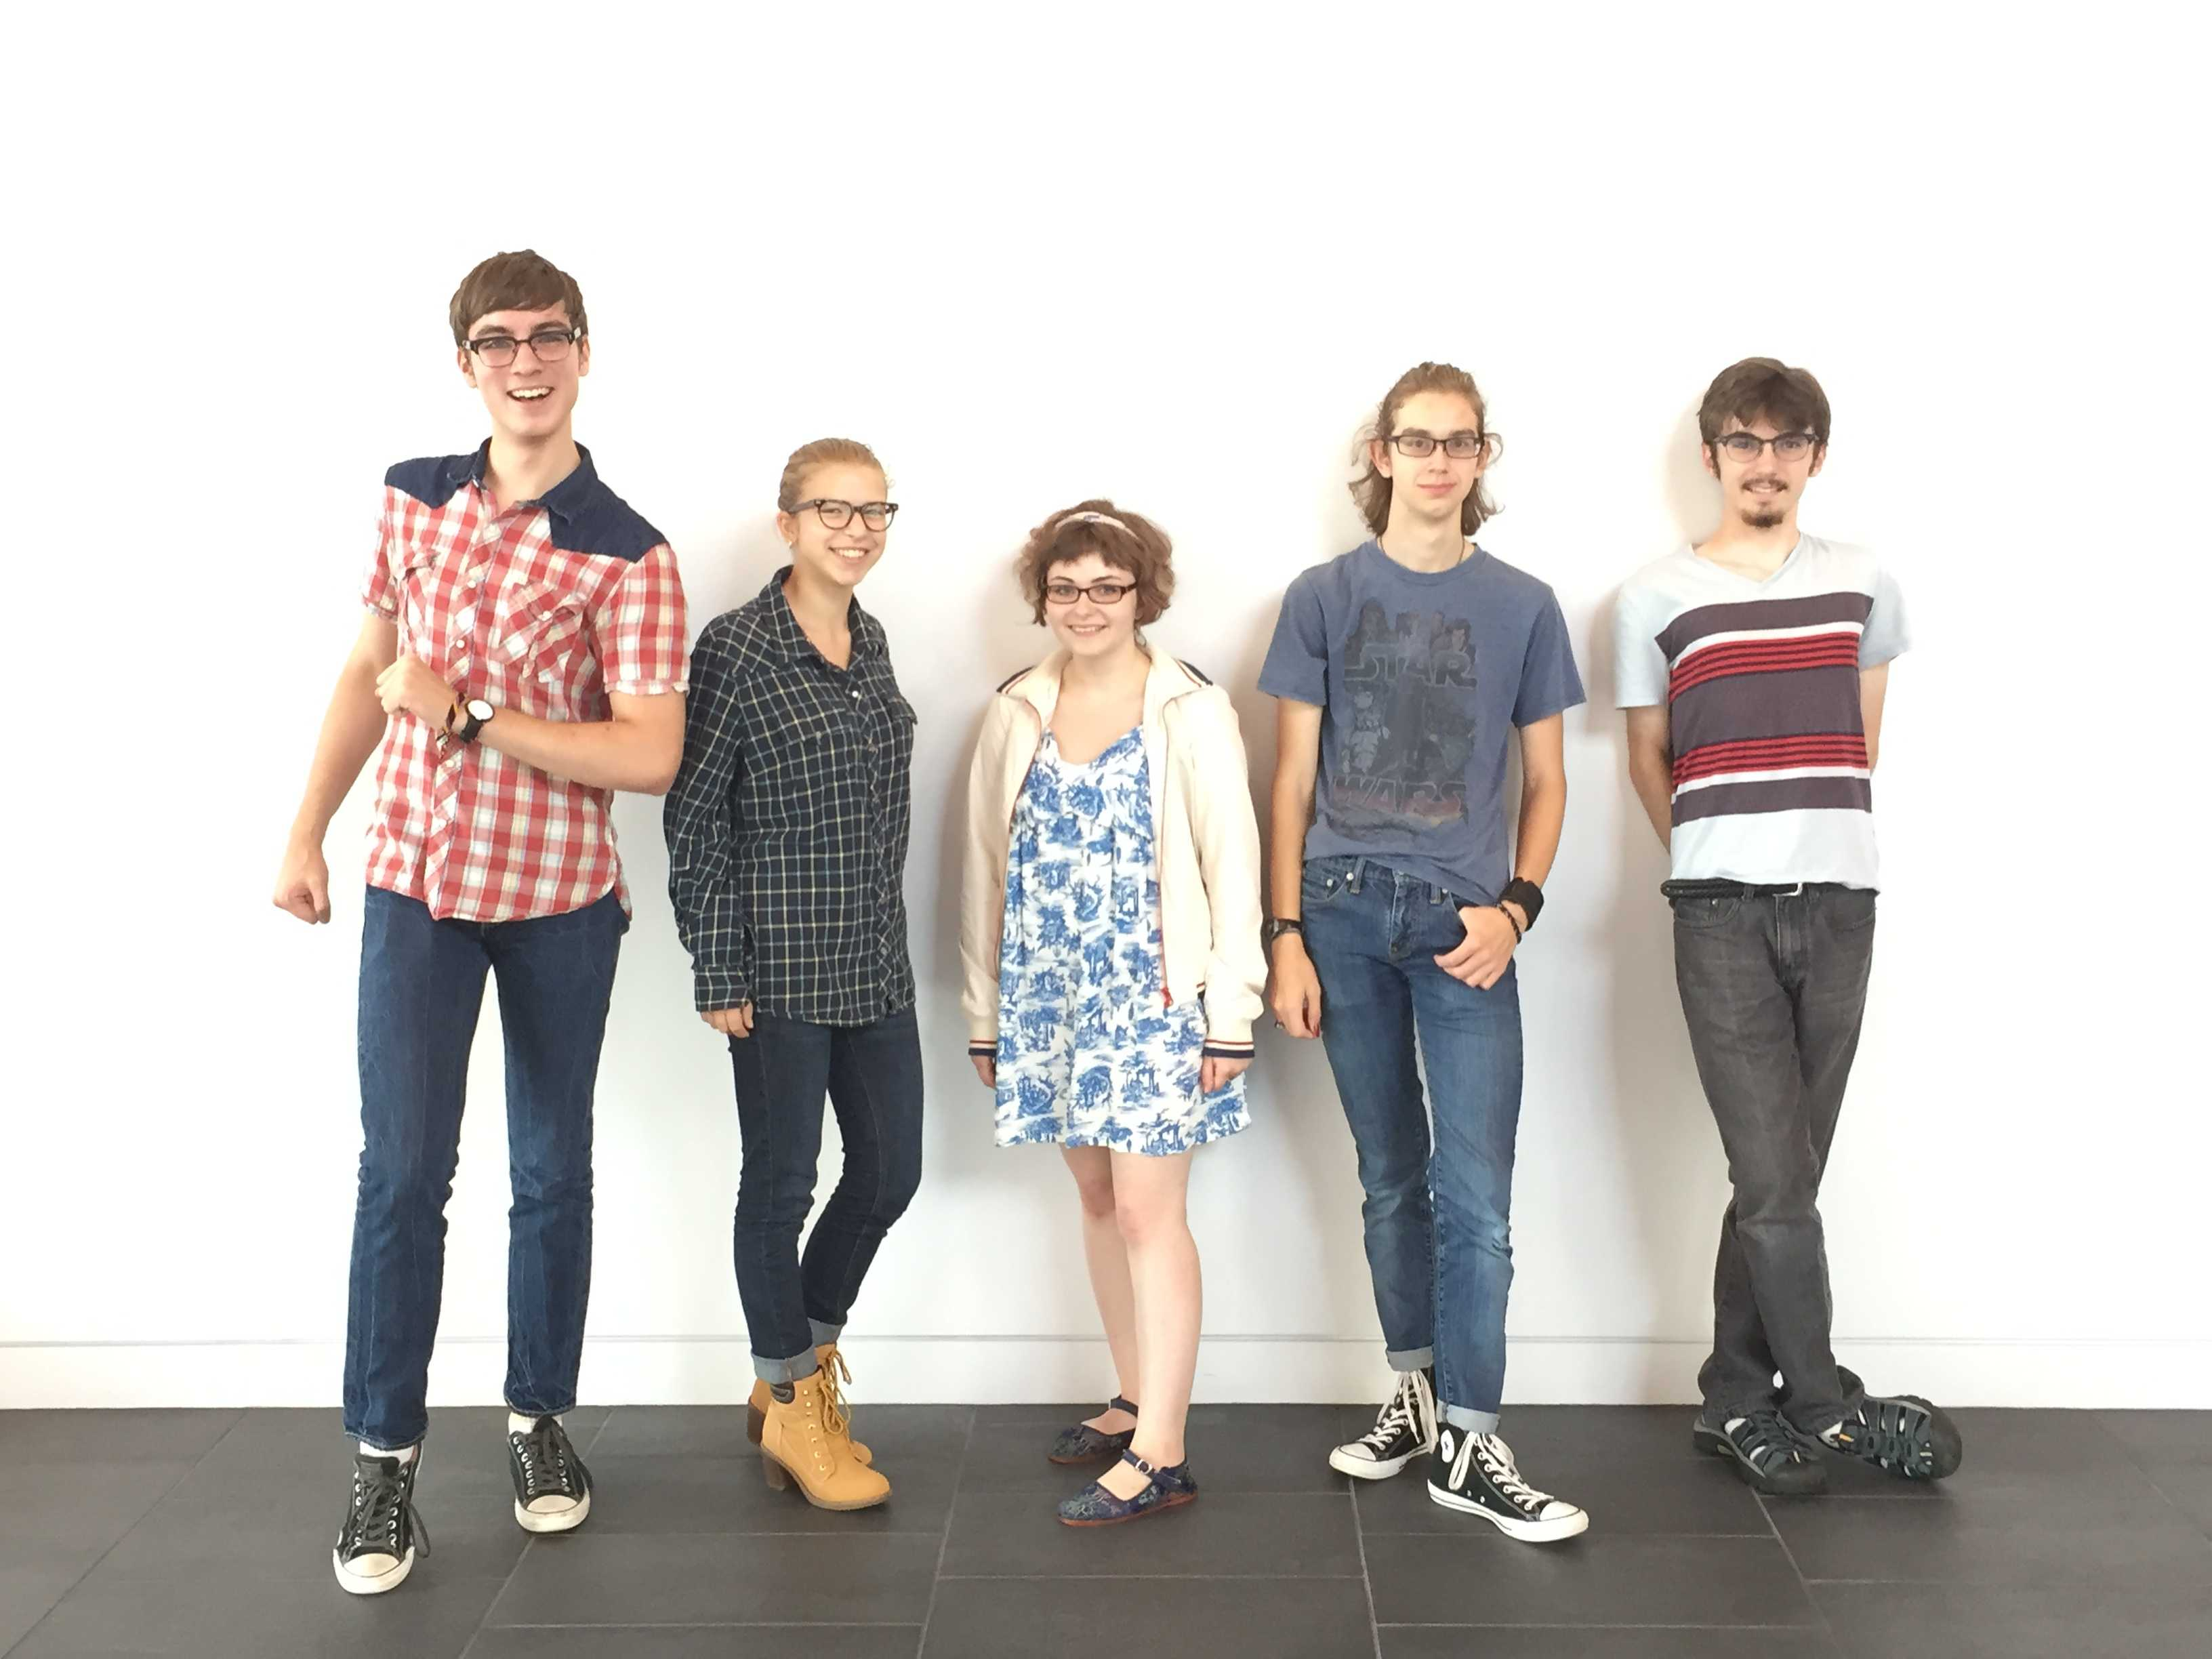 Theater students get excited about performing in the new Huss Center. From left to right: junior Kyle Ziemer, senior Maren Findlay, juniors Phoebe Pannier, Andrew Michel, and Cole Thompson.